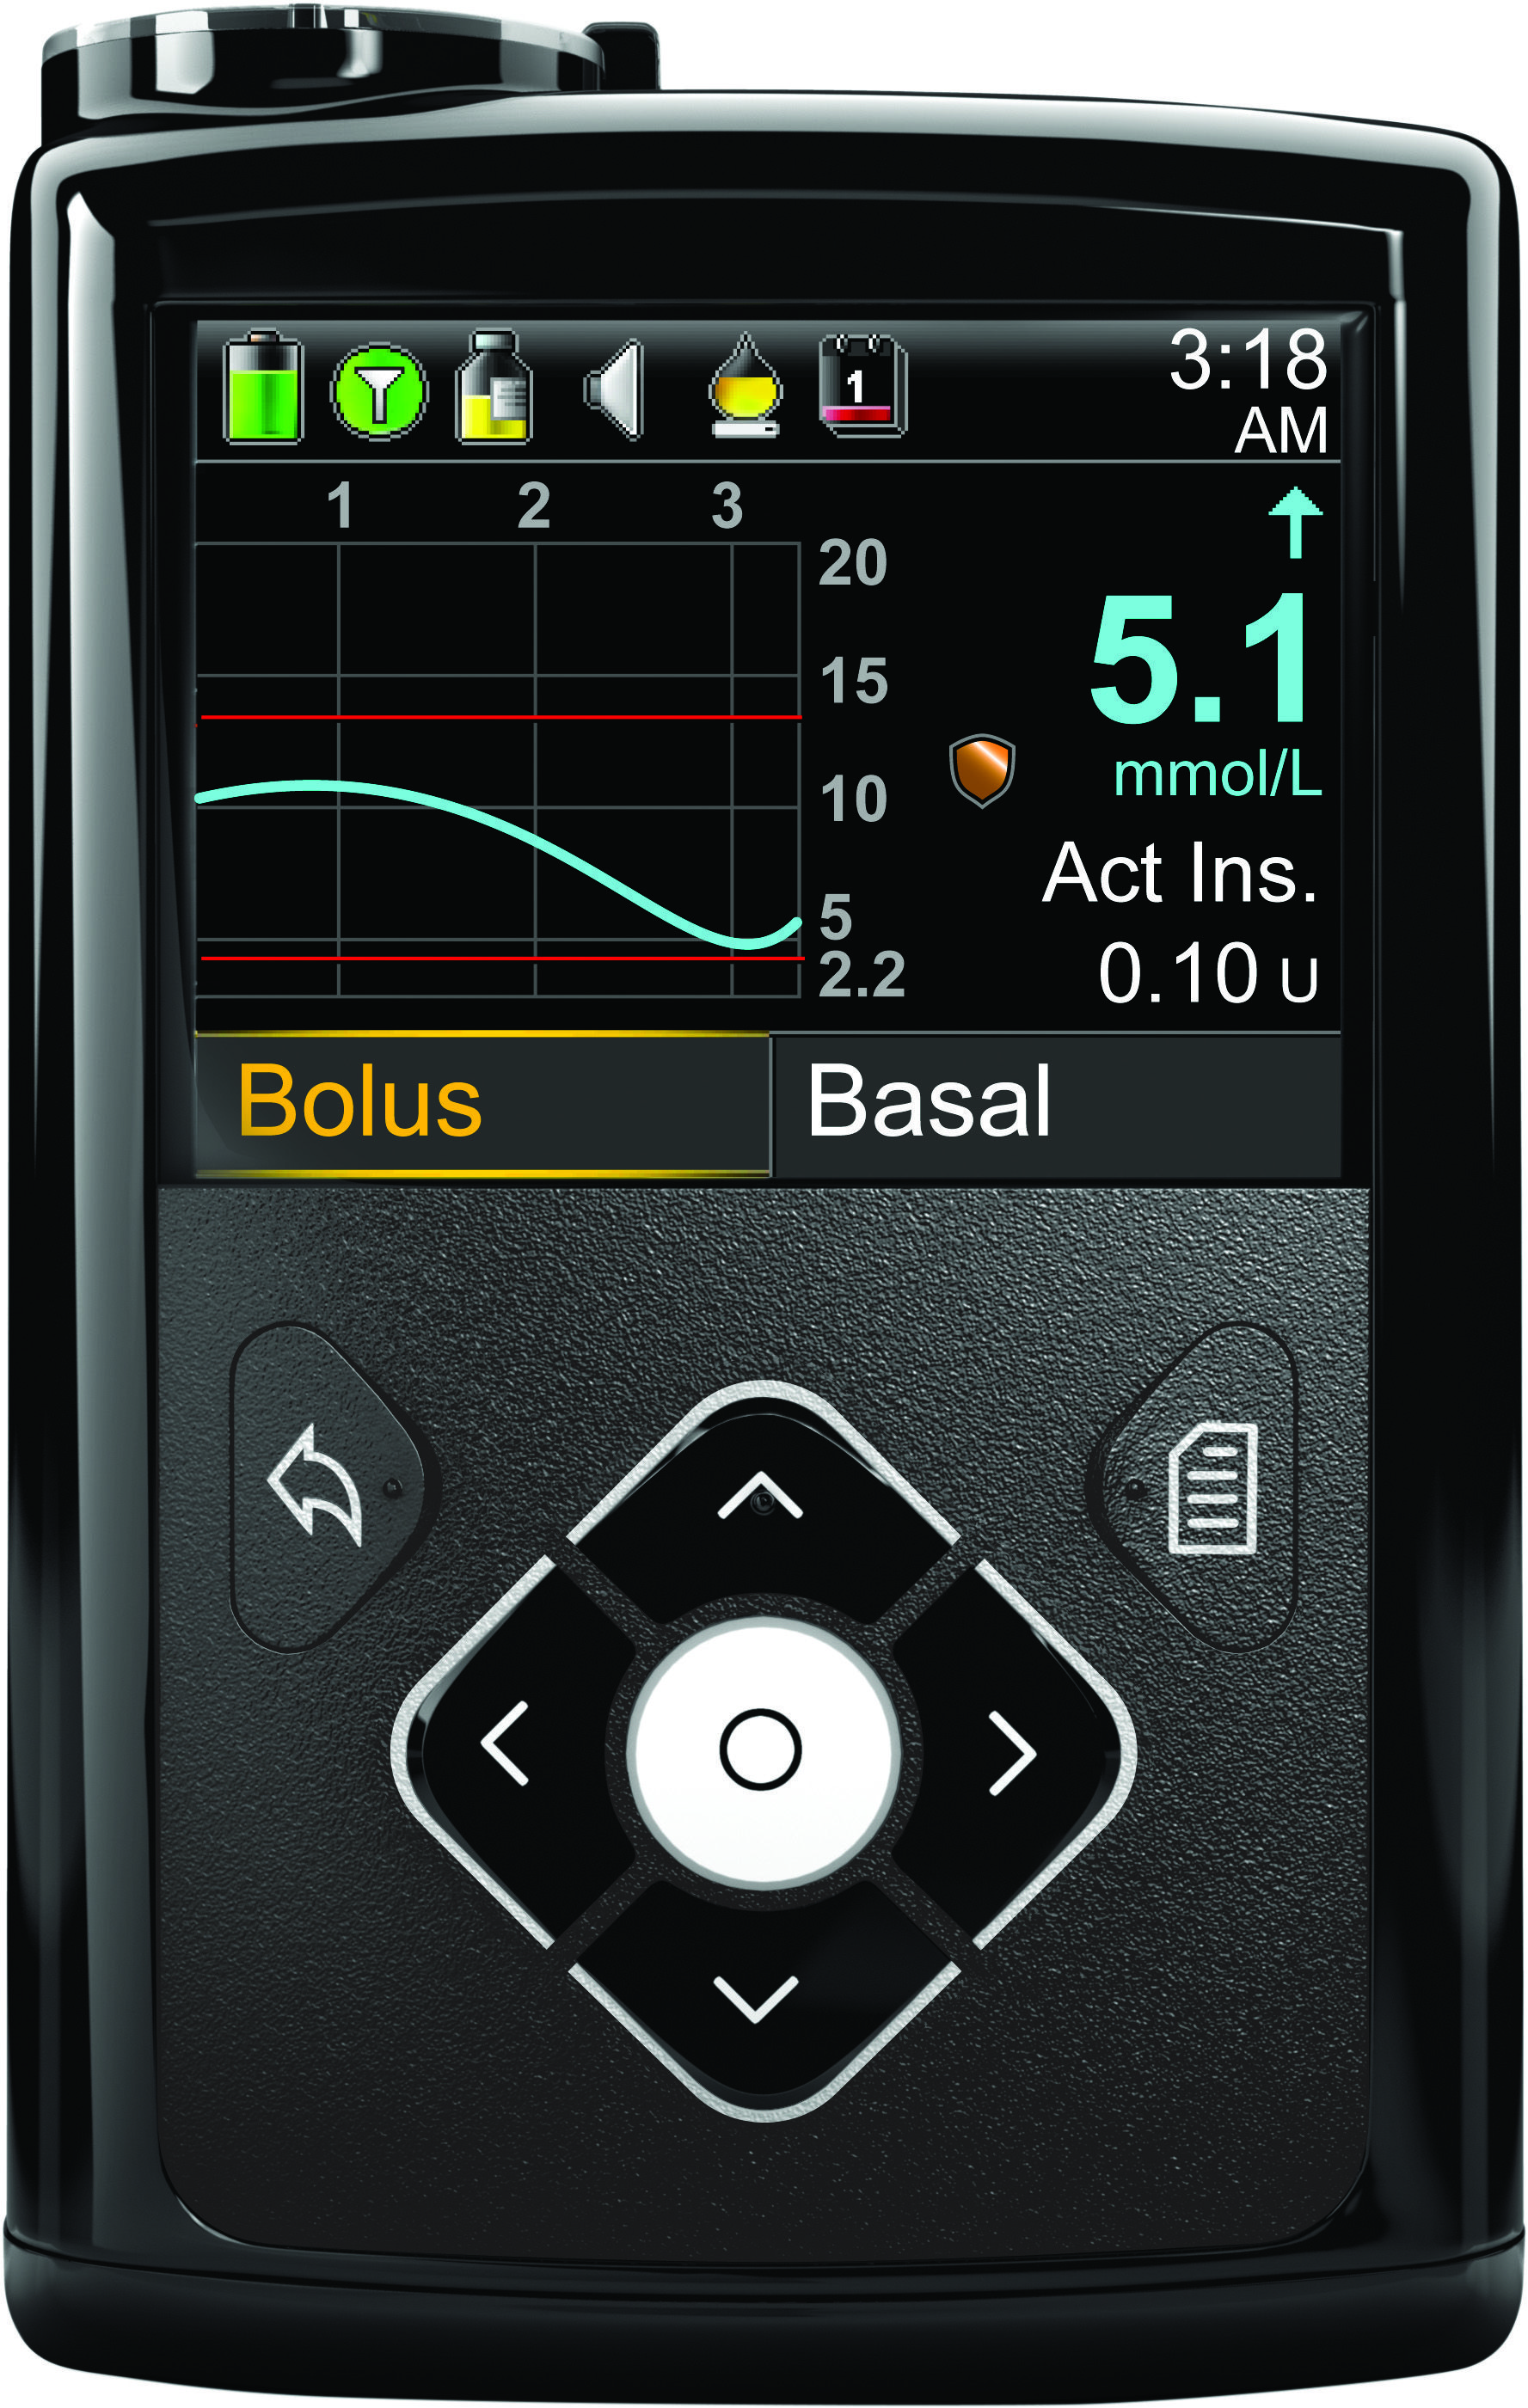 Medtronic Launches New Minimed 640g Insulin Pump In